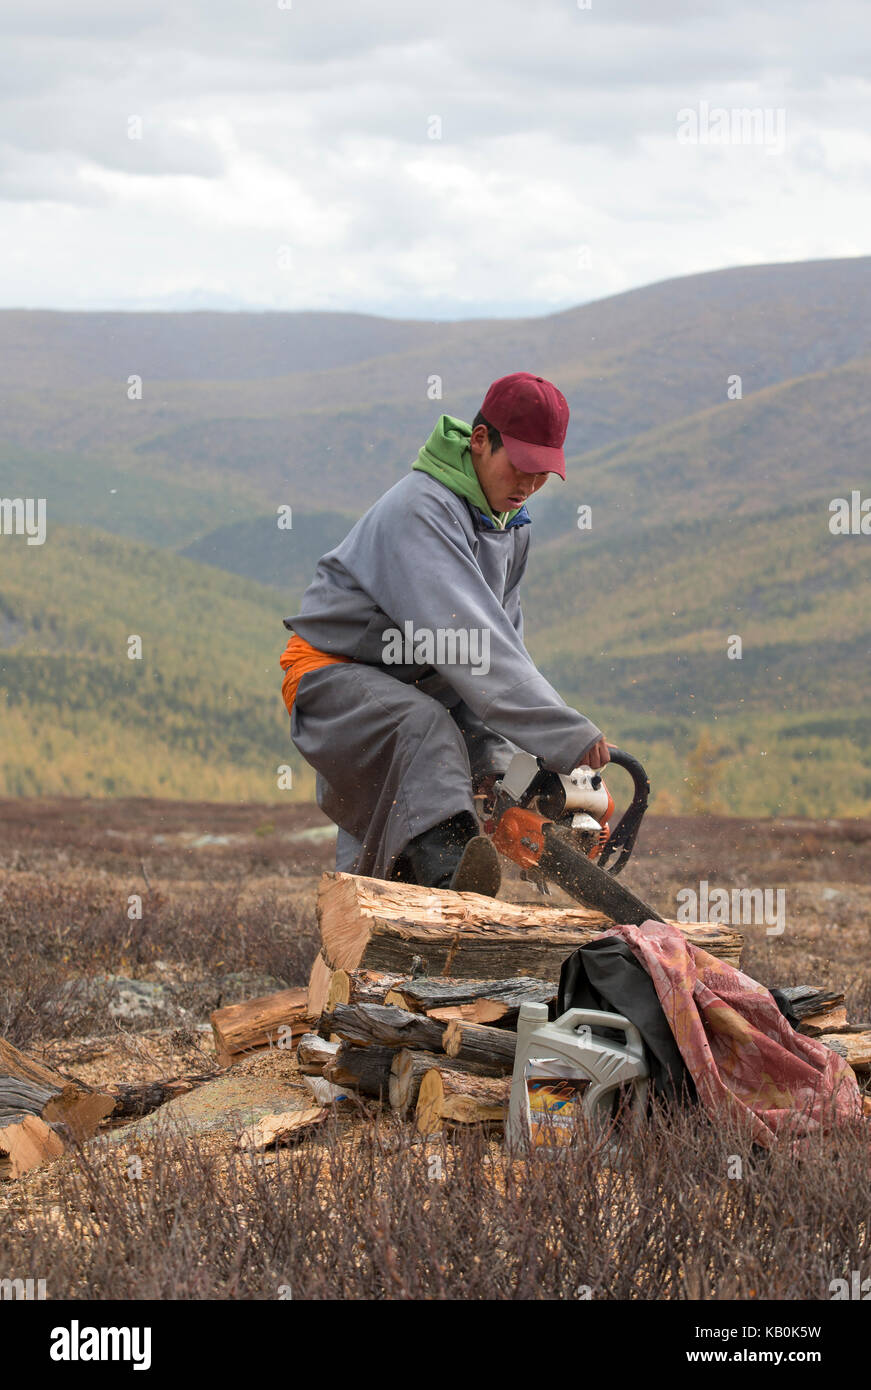 mongolian man cutting firewood in a falling snow - Stock Image